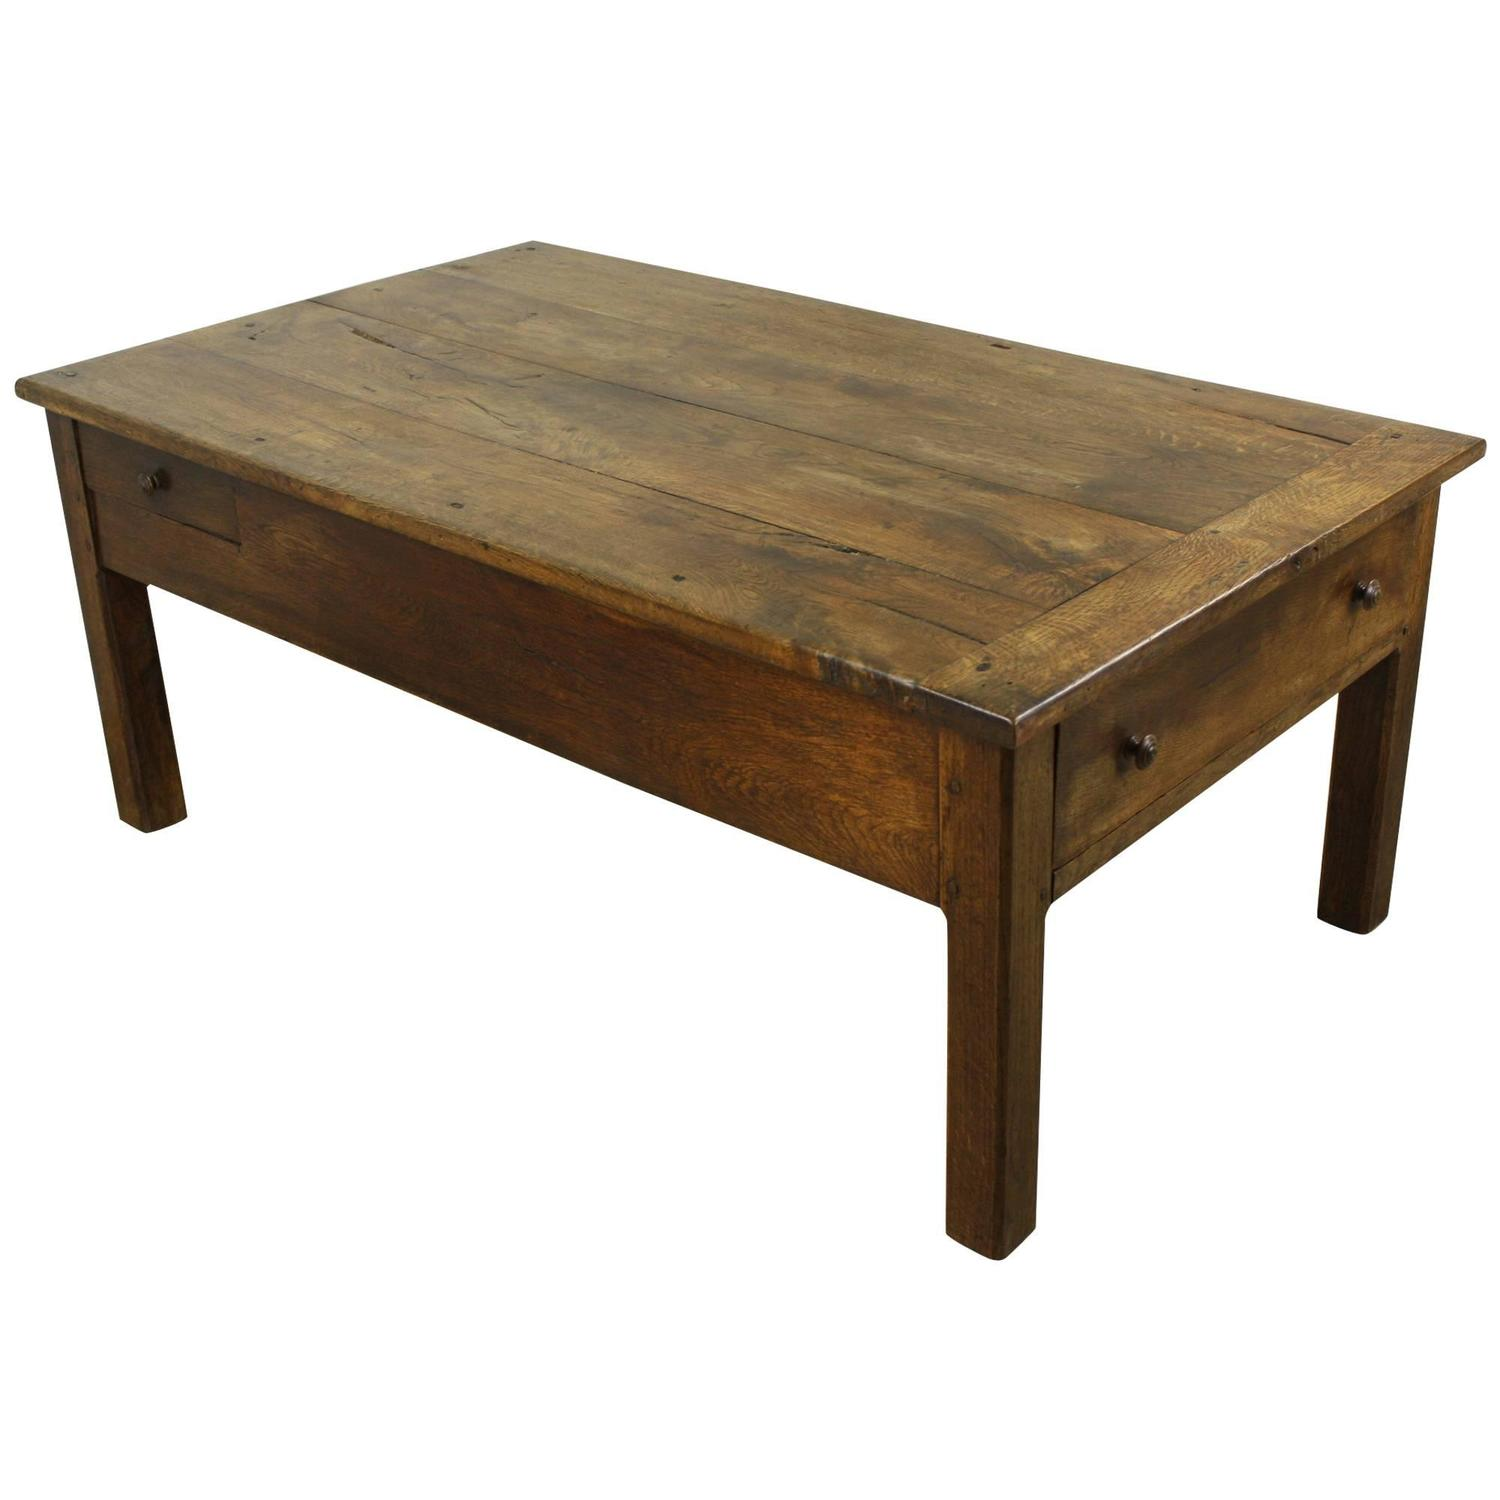 Antique french oak country coffee table two drawers at 1stdibs Coffee table antique